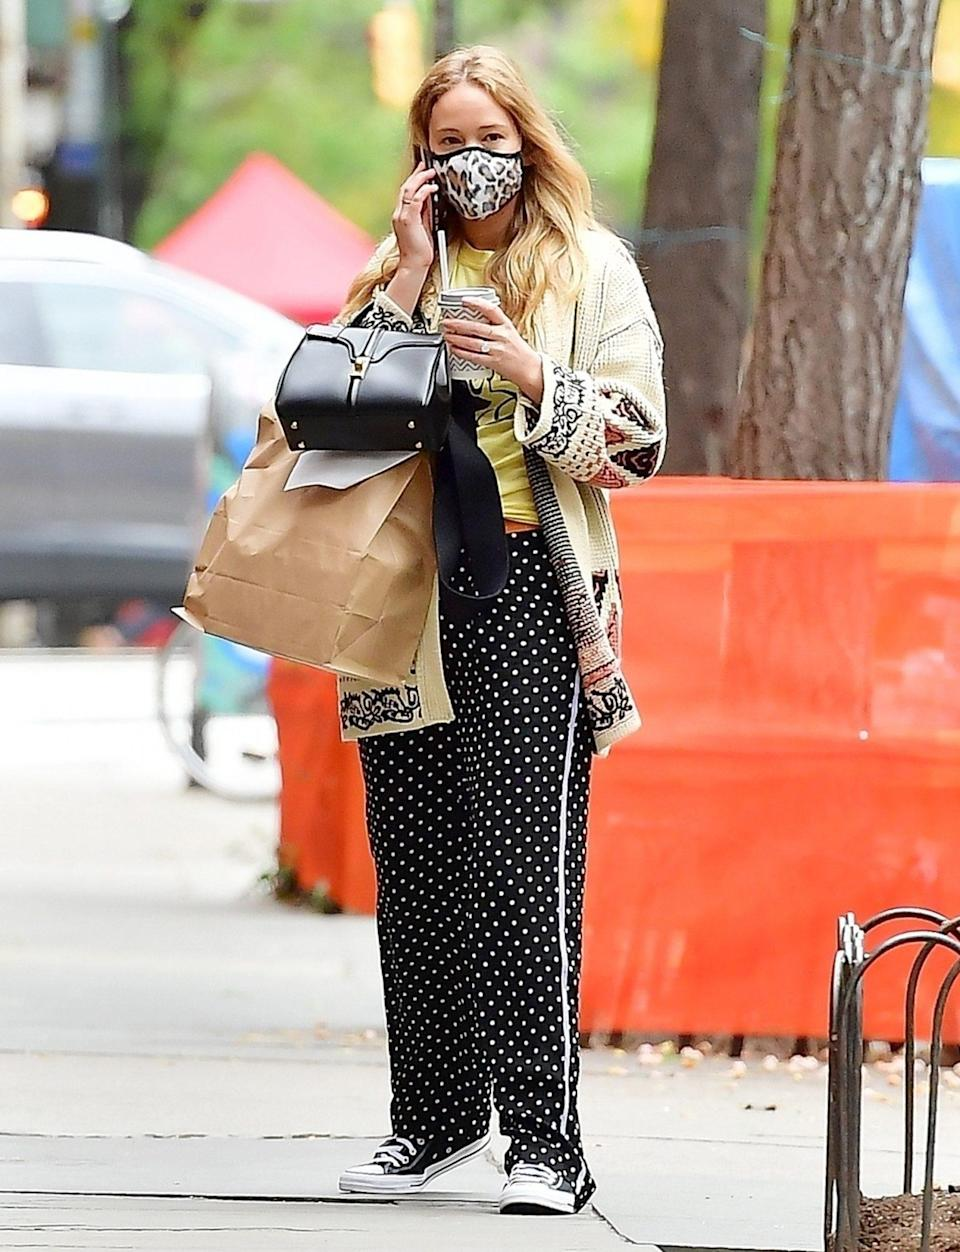 <p>Jennifer Lawrence steps out in polka dot pants to meet friends for lunch on Monday in N.Y.C. </p>